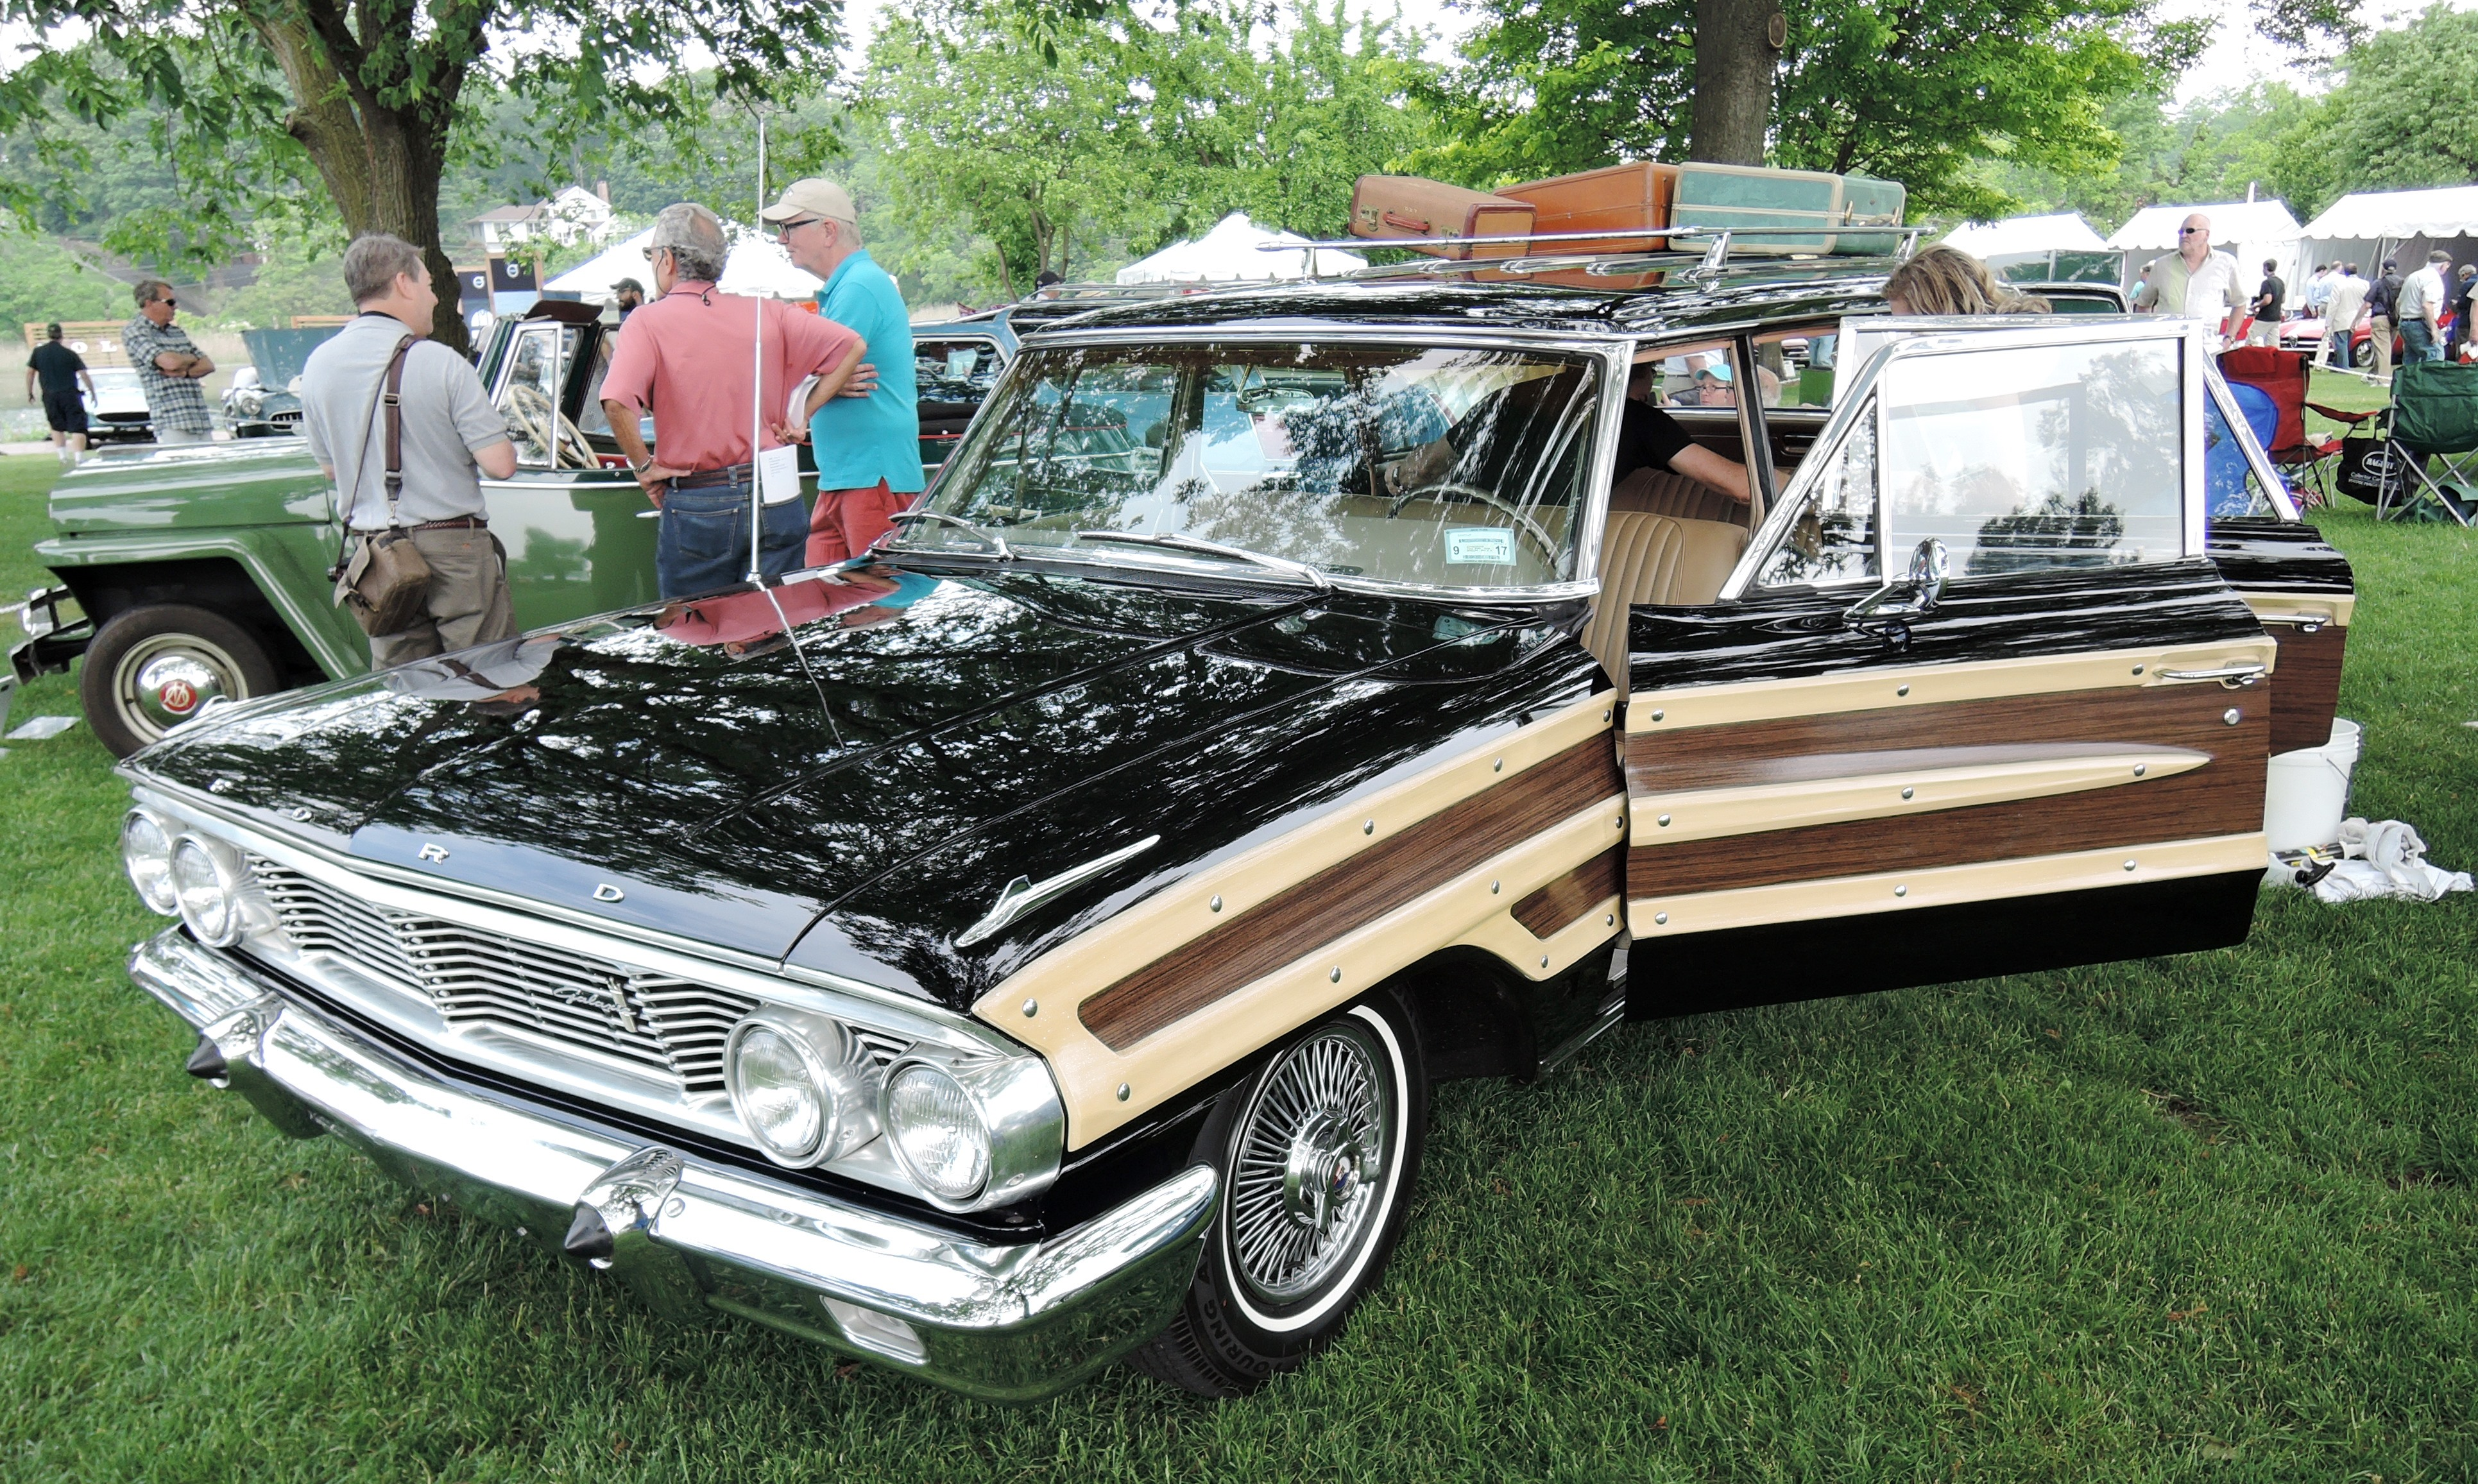 black wood 1964 Ford Country Squire Station Wagon - greenwich concours